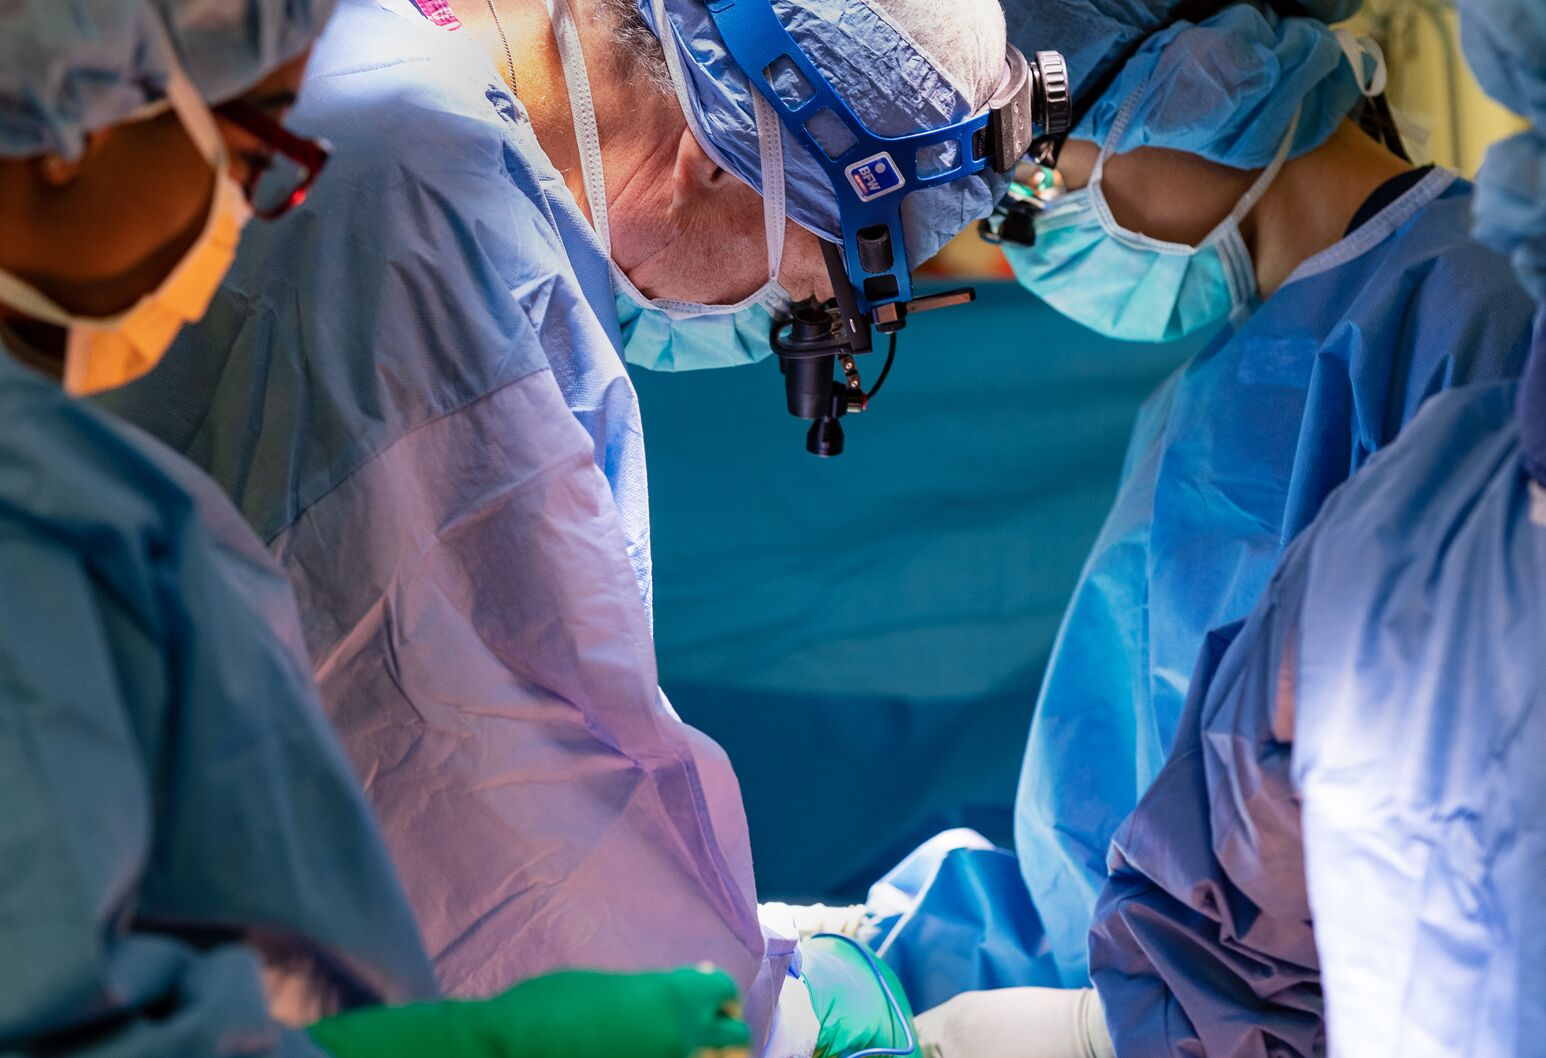 Cardiothoracic surgeon Alan Hartman, MD, leads a team in an open-heart surgery at North Shore University Hospital.